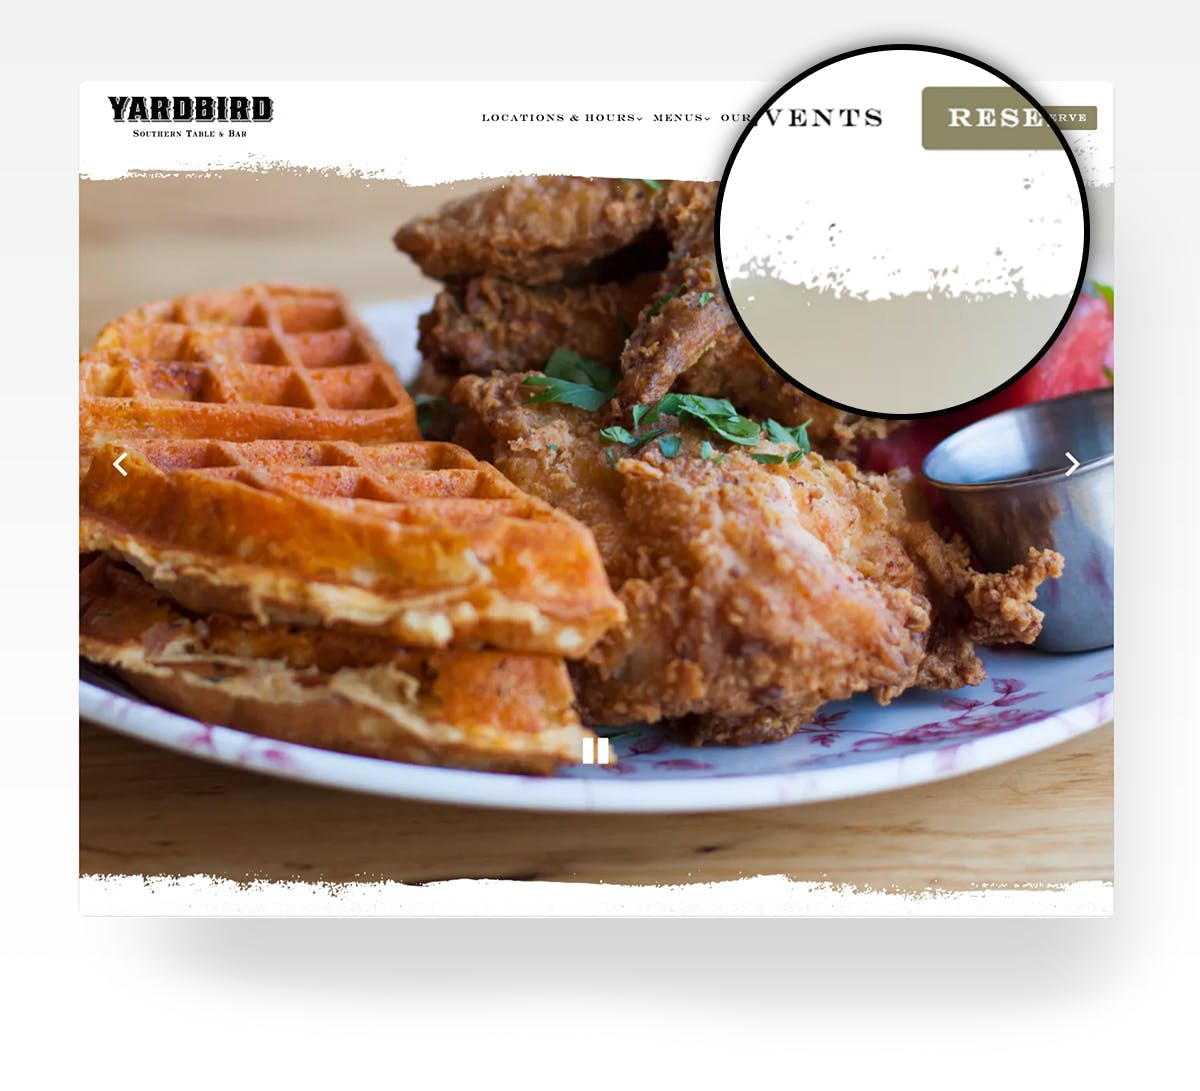 A picture of a plate of food from Yardbird.